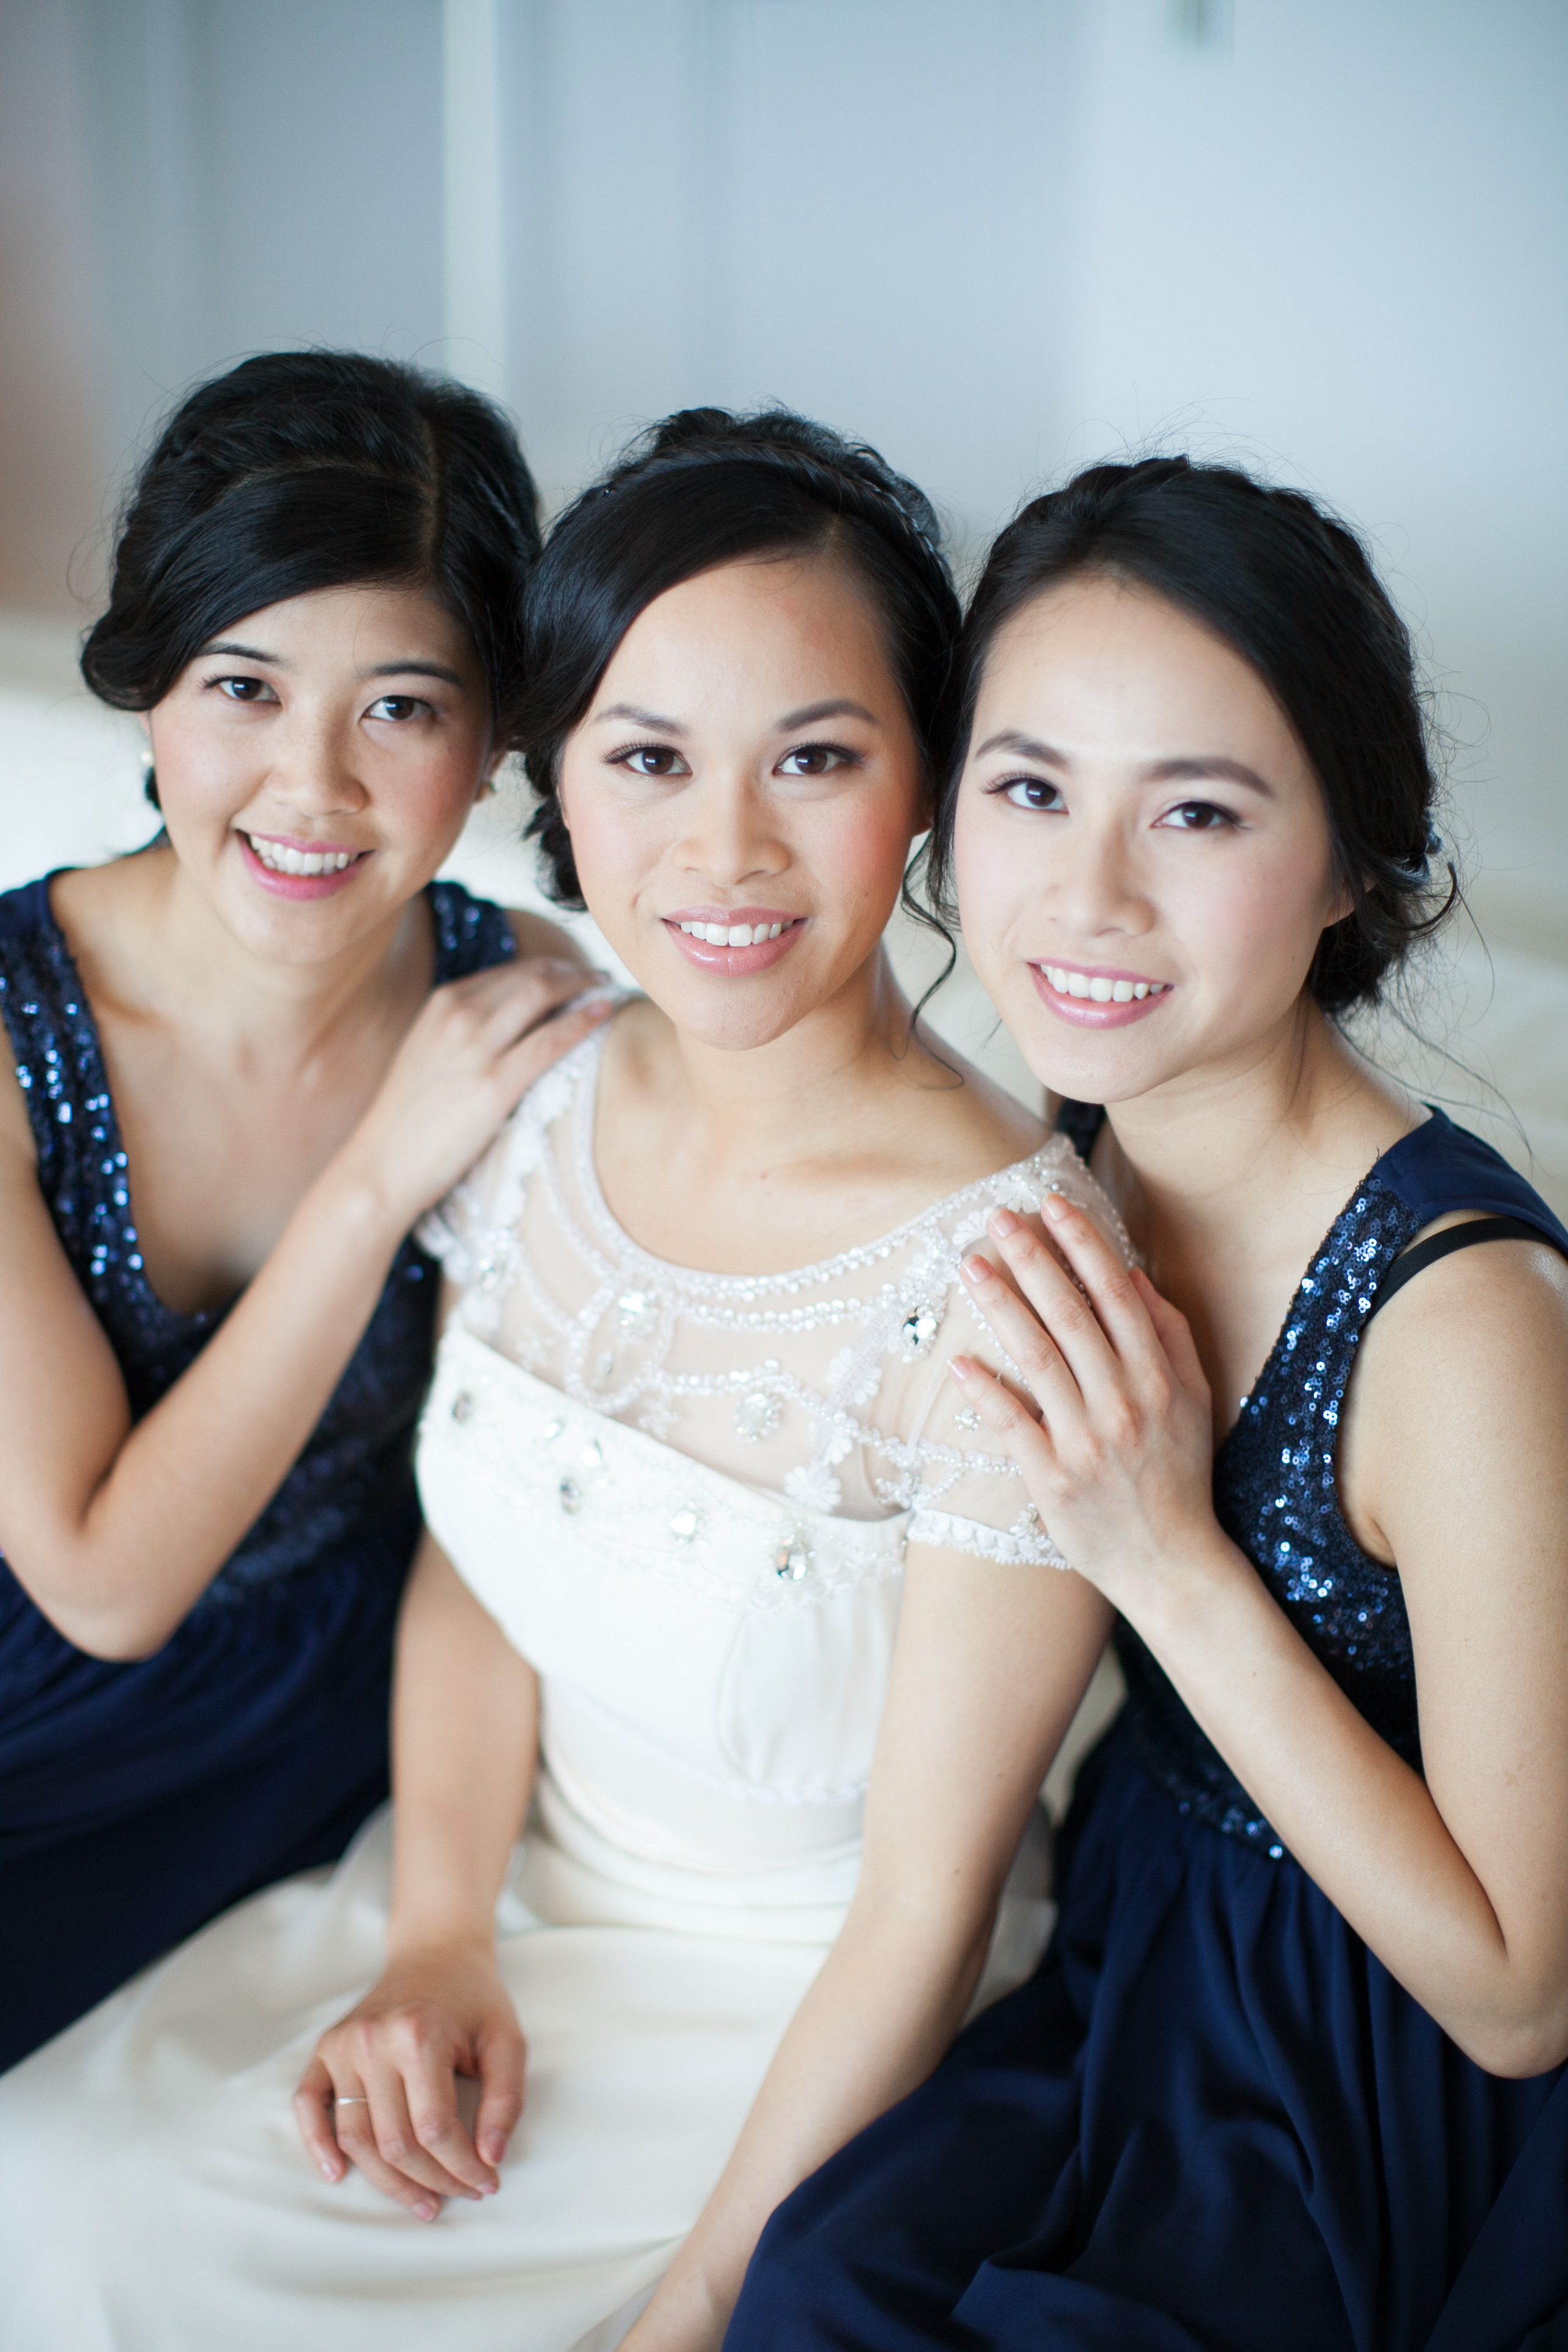 Asian wedding elegant makeup & hair